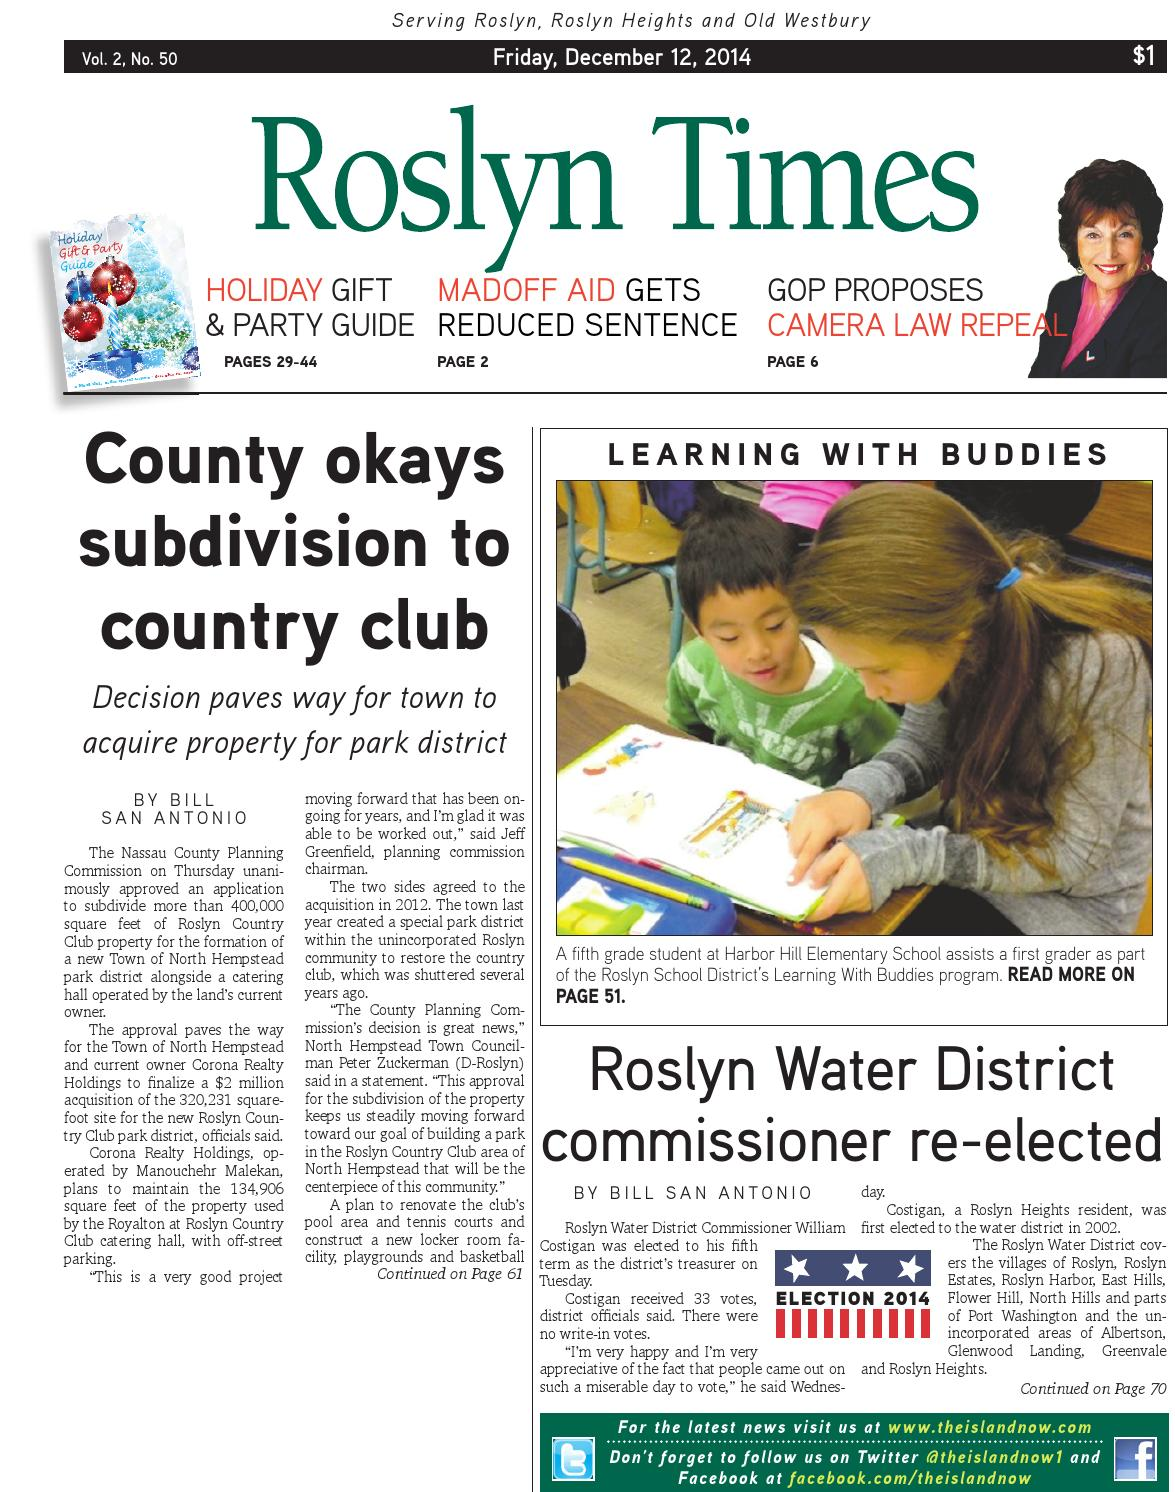 Roslyn Times 12.11.14 by The Island Now - issuu